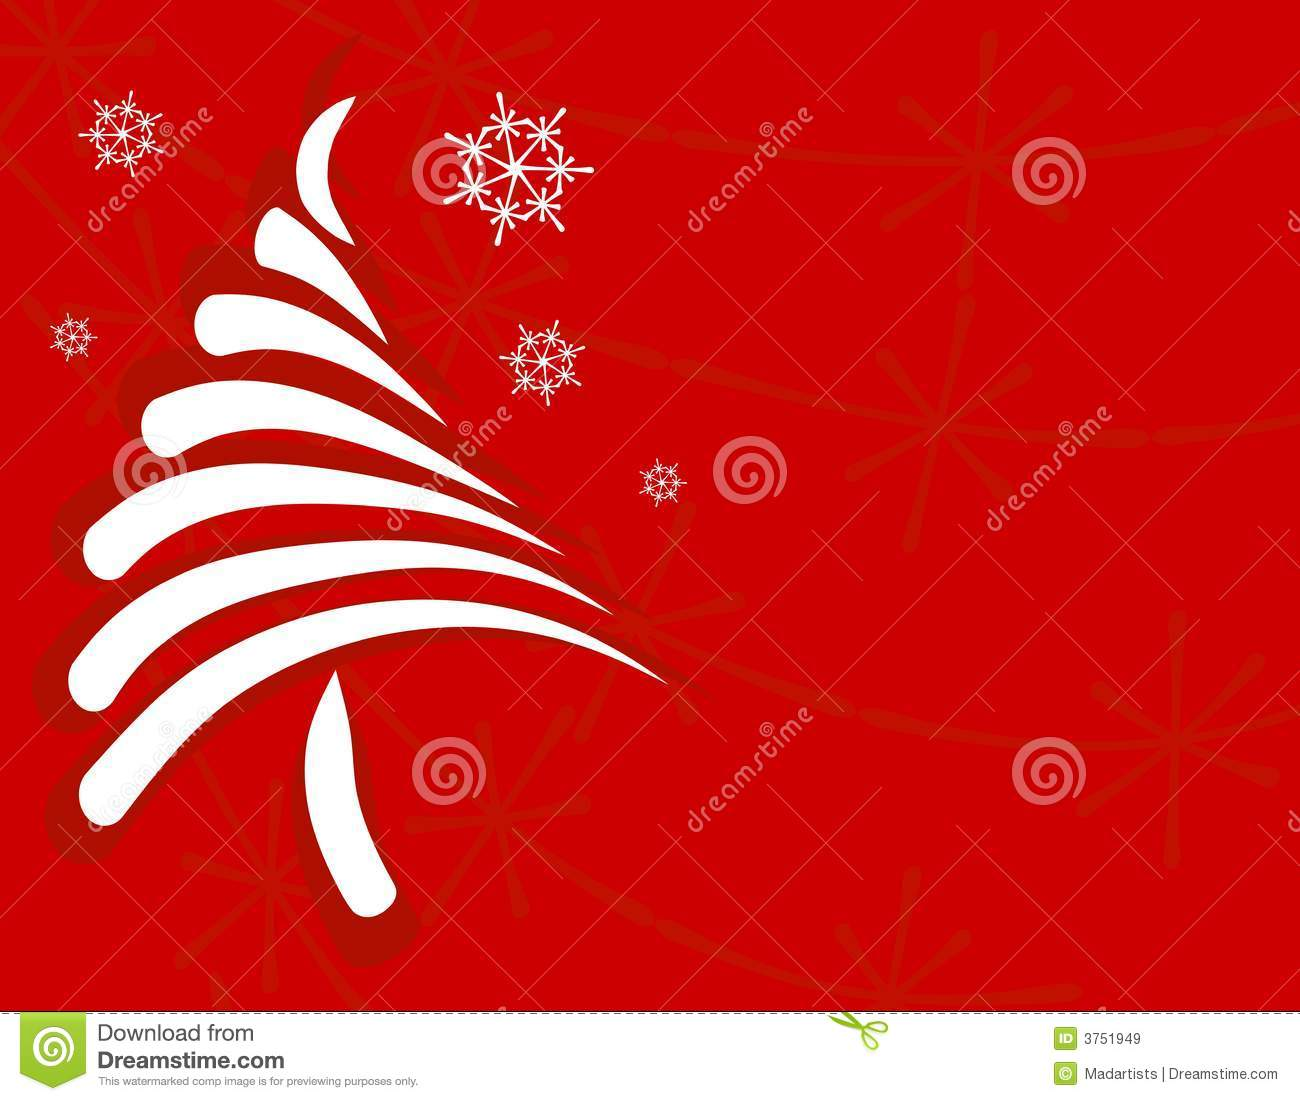 Clip art illustration featuring a unique looking christmas tree made